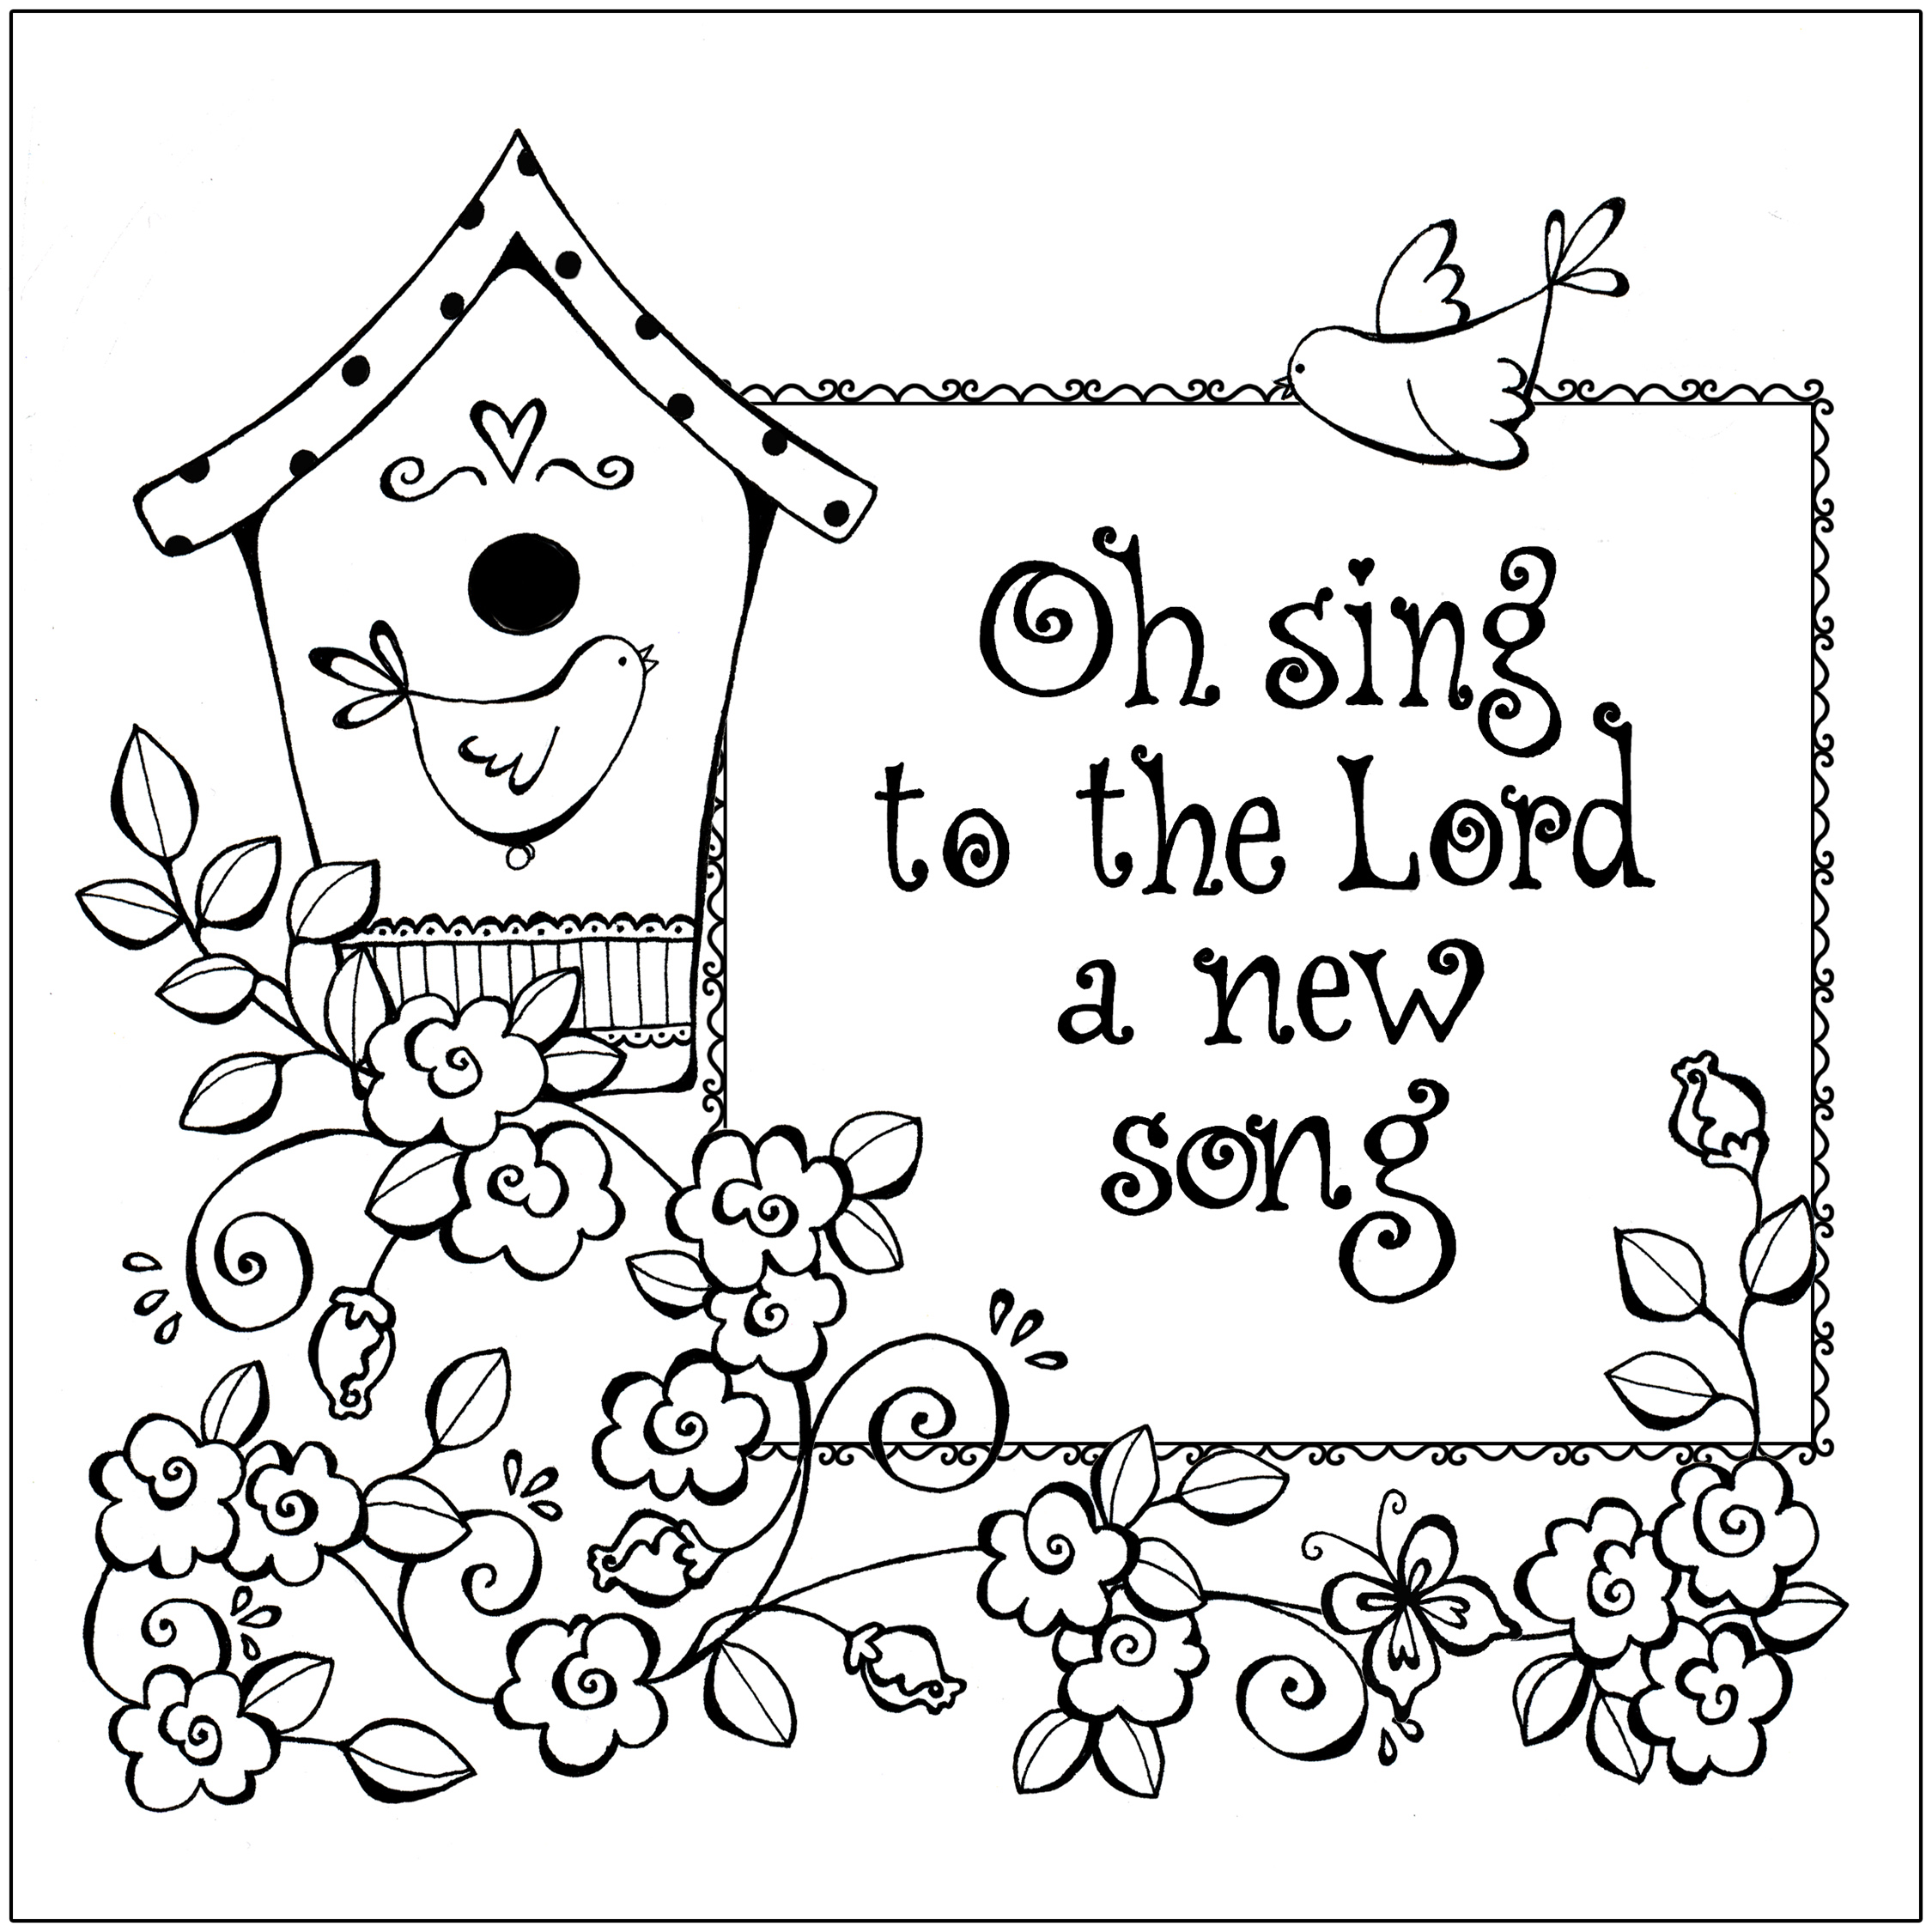 Free Bible Coloring Pages Simple Free Printable Christian Coloring Pages For Kids  Best Coloring Inspiration